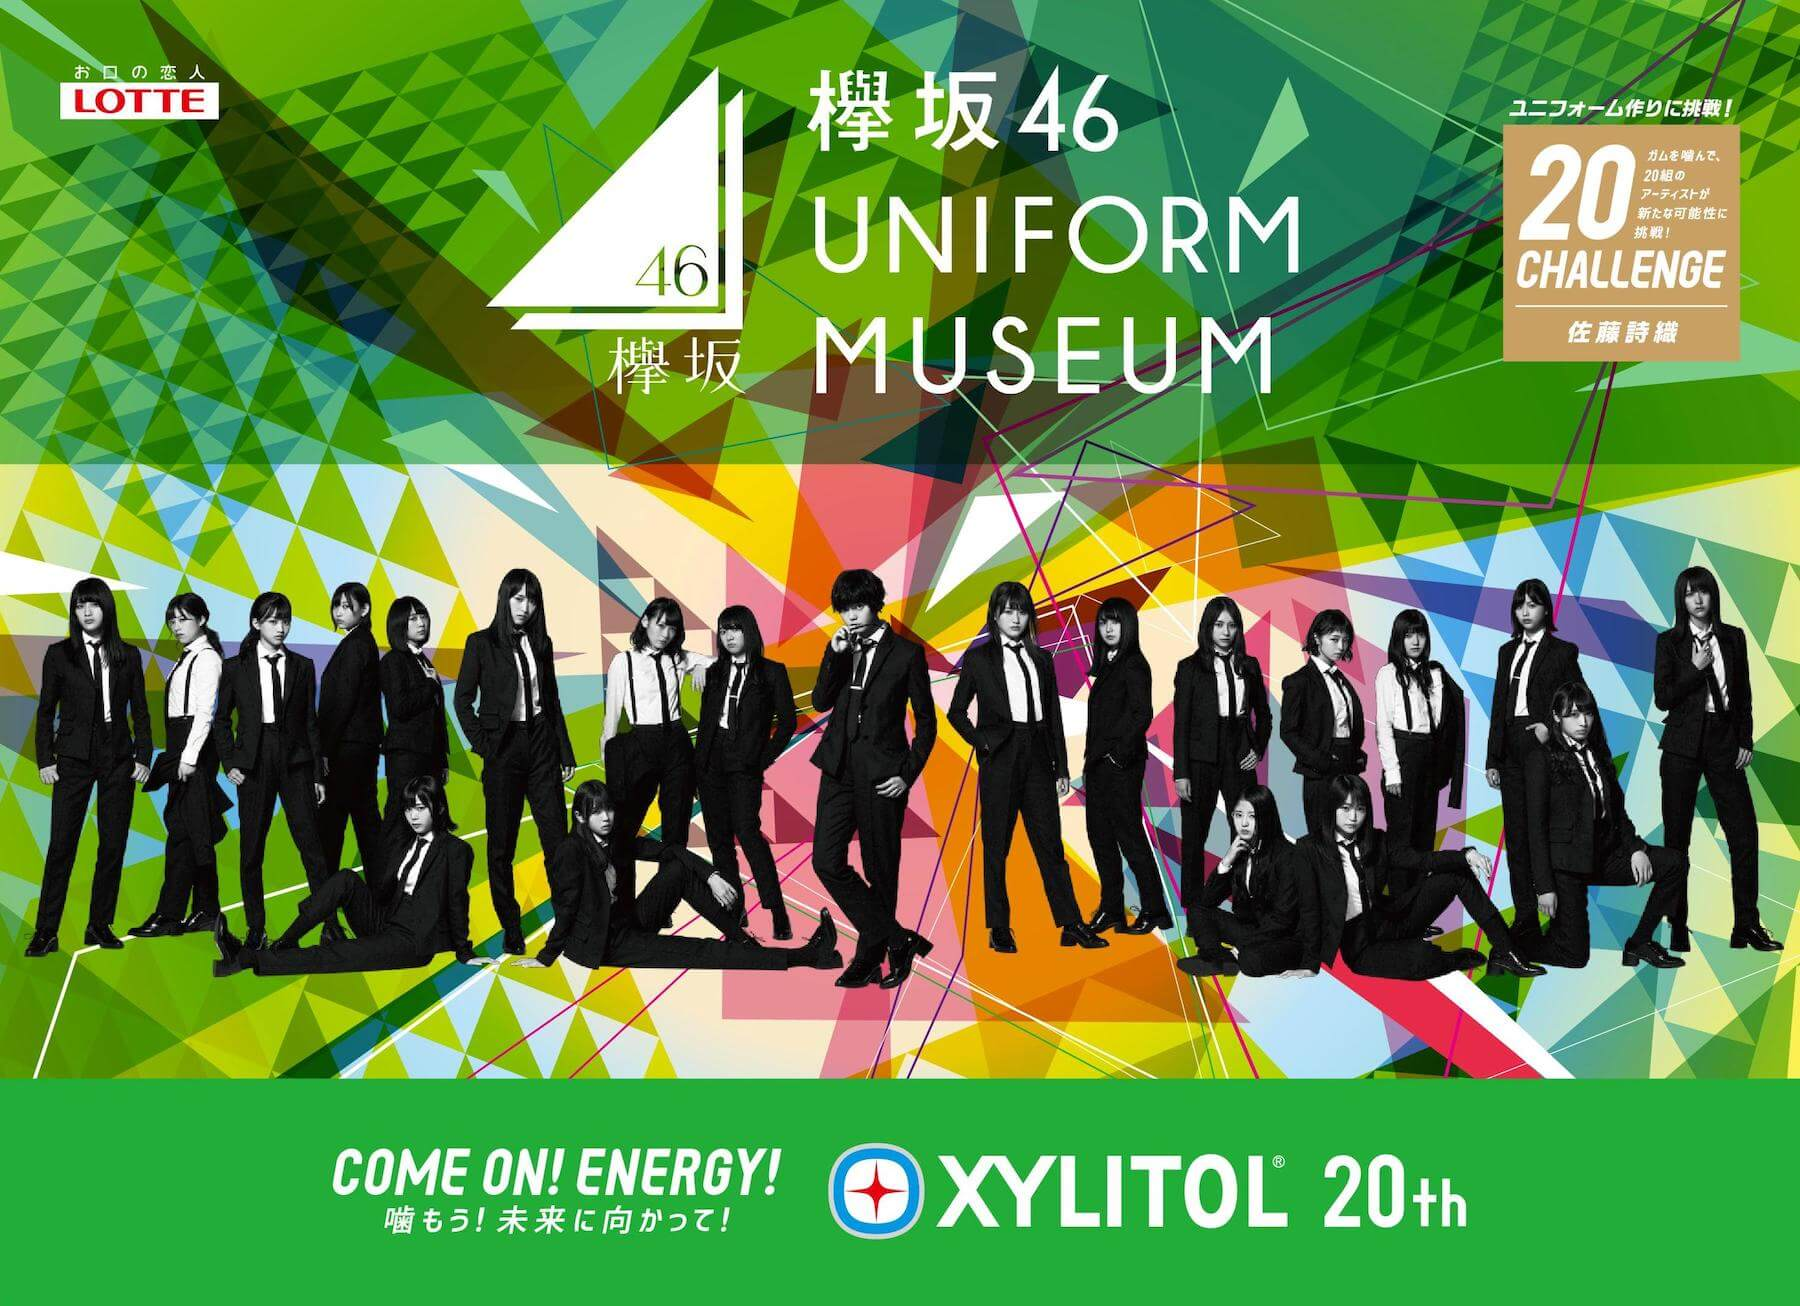 「欅坂46 UNIFORM MUSEUM supported by XYLITOL20th」メインビジュアル